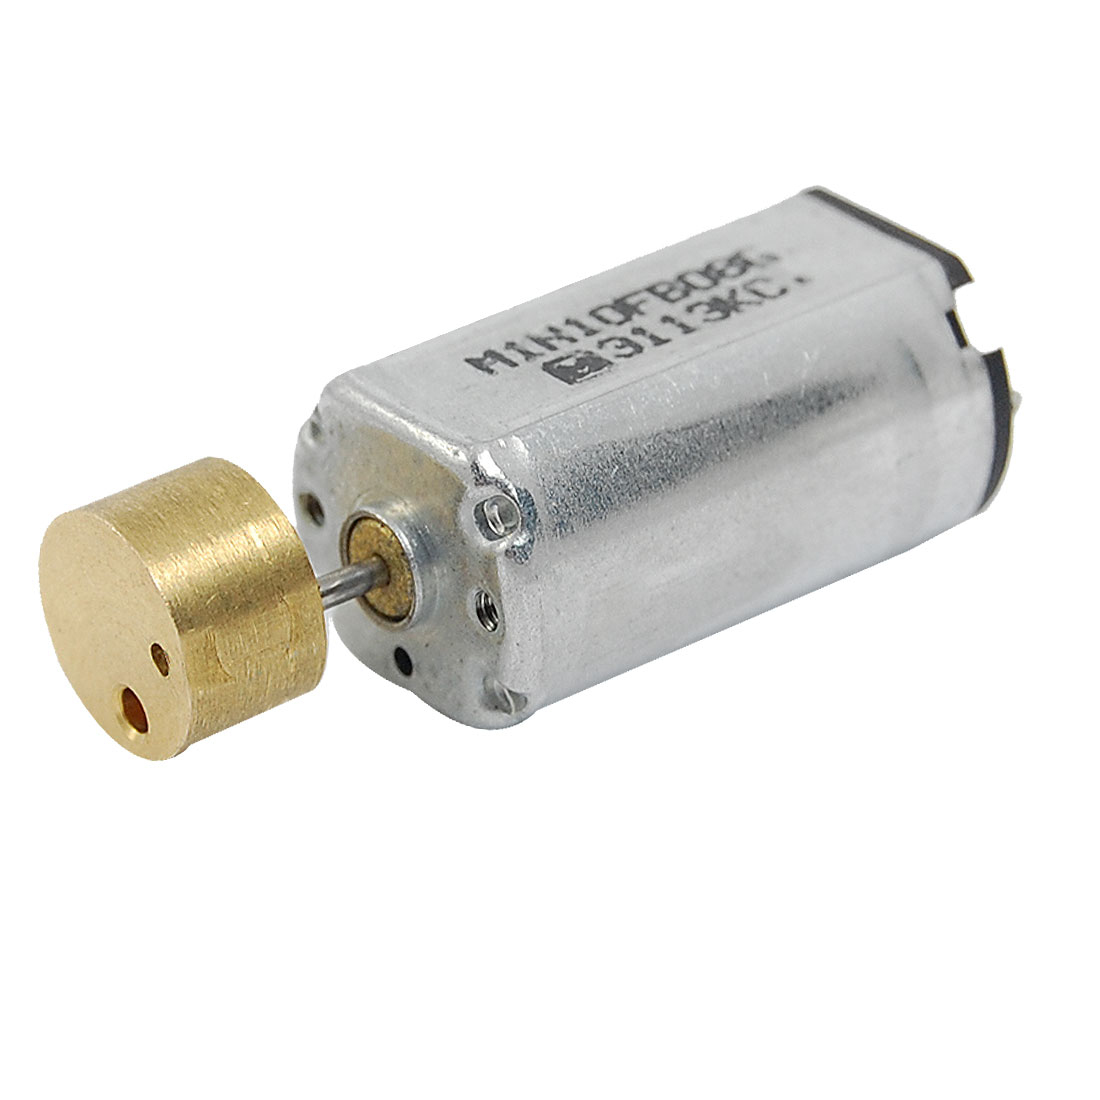 DC 6V 0.04A 10000RPM Mini Vibrating Toy Vibration Motor